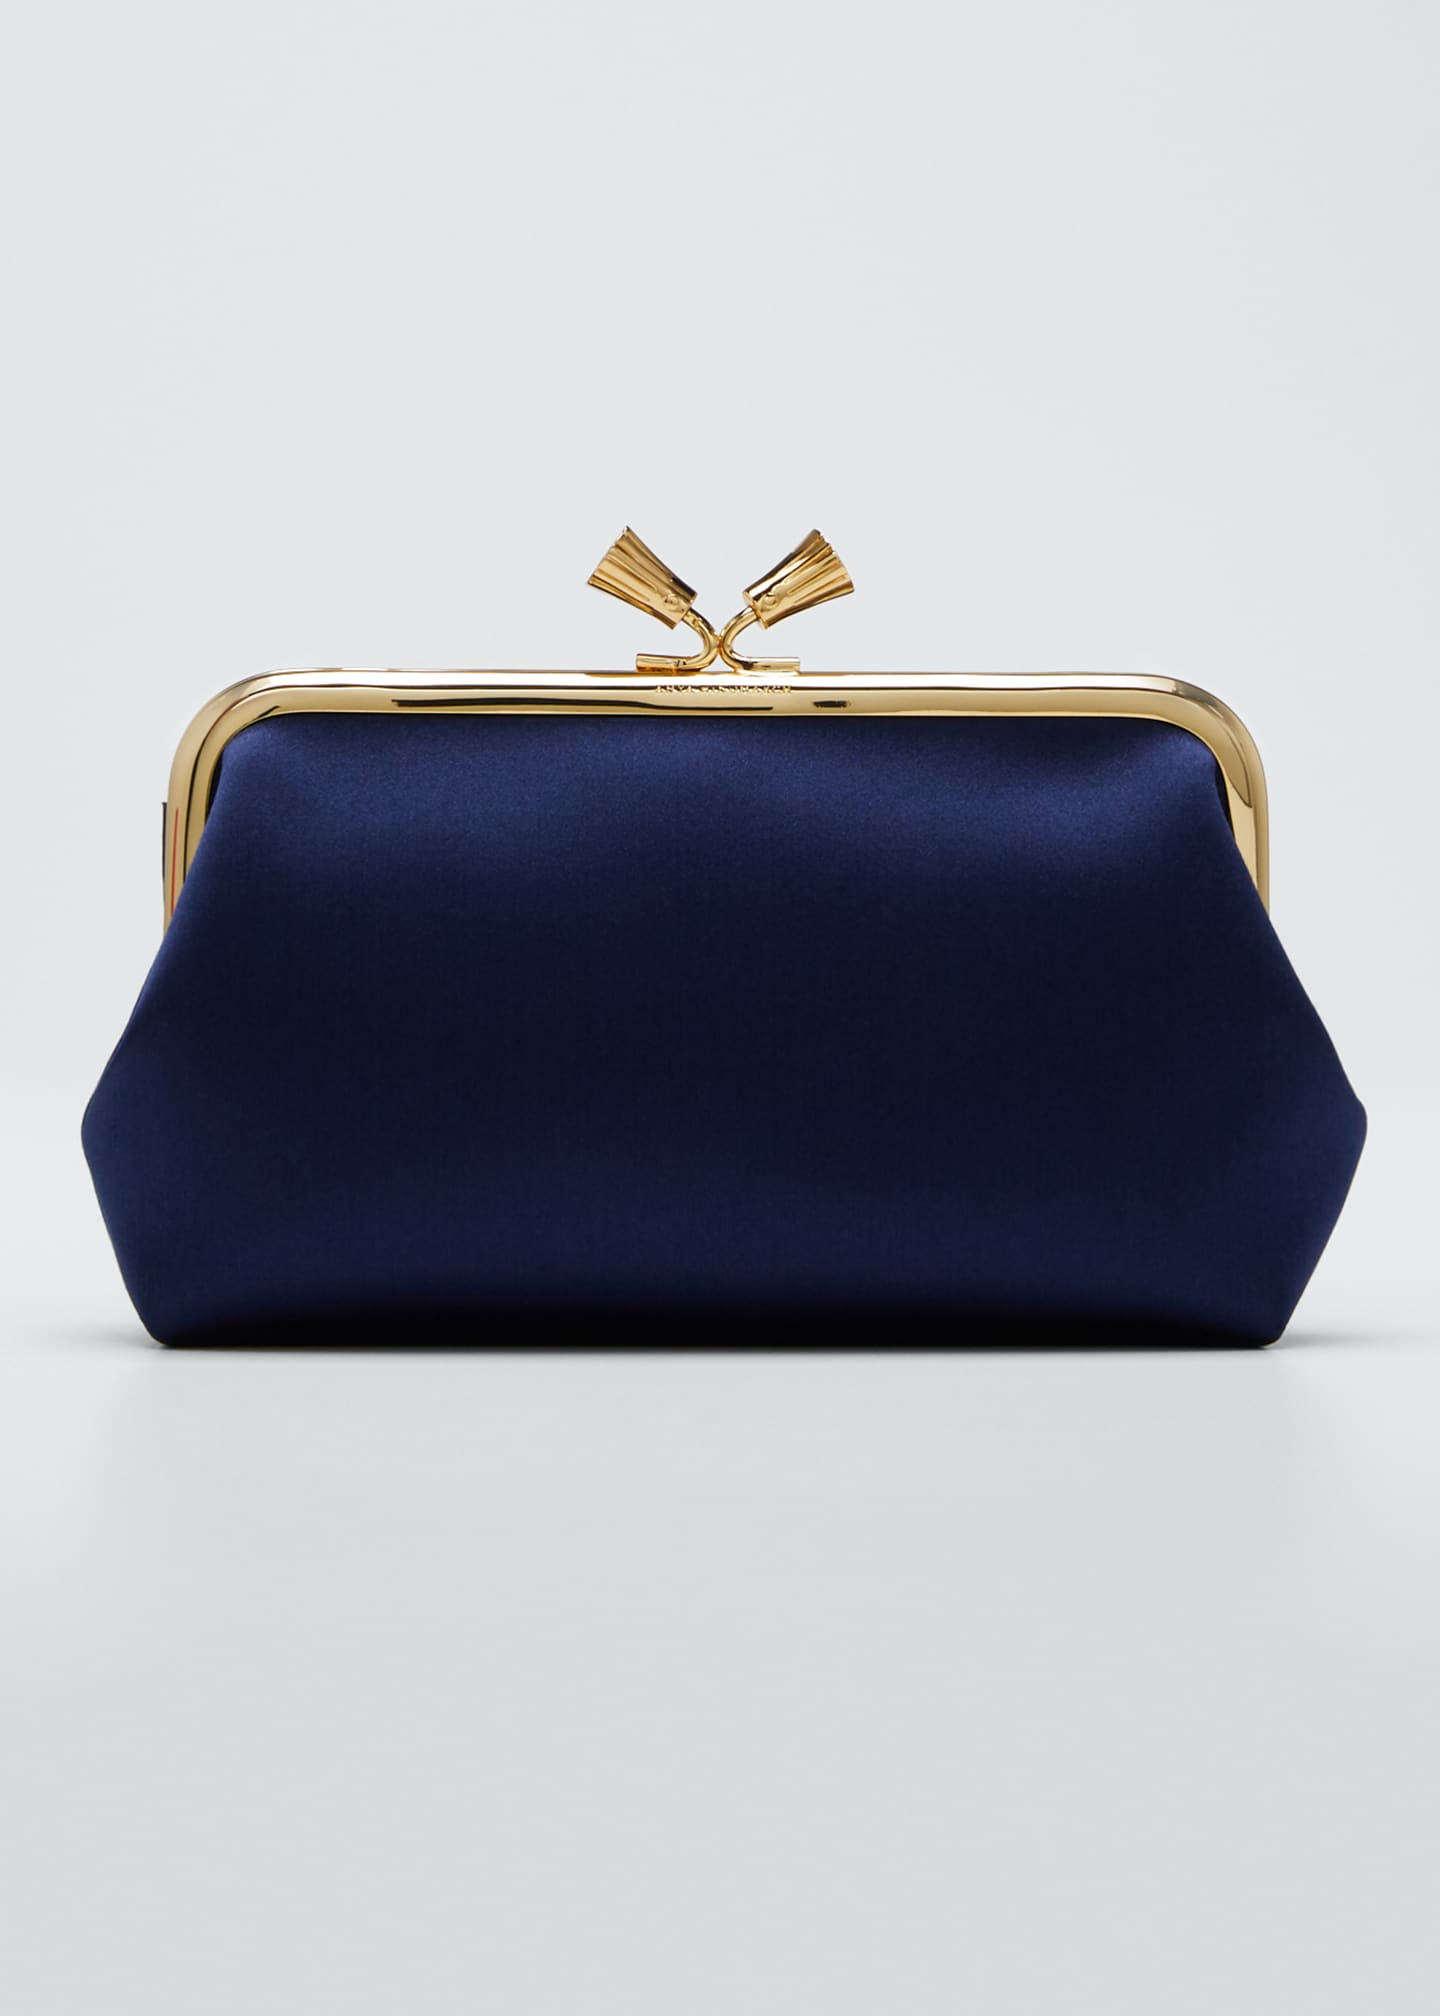 Anya Hindmarch Maud Tassel Satin Clutch Bag